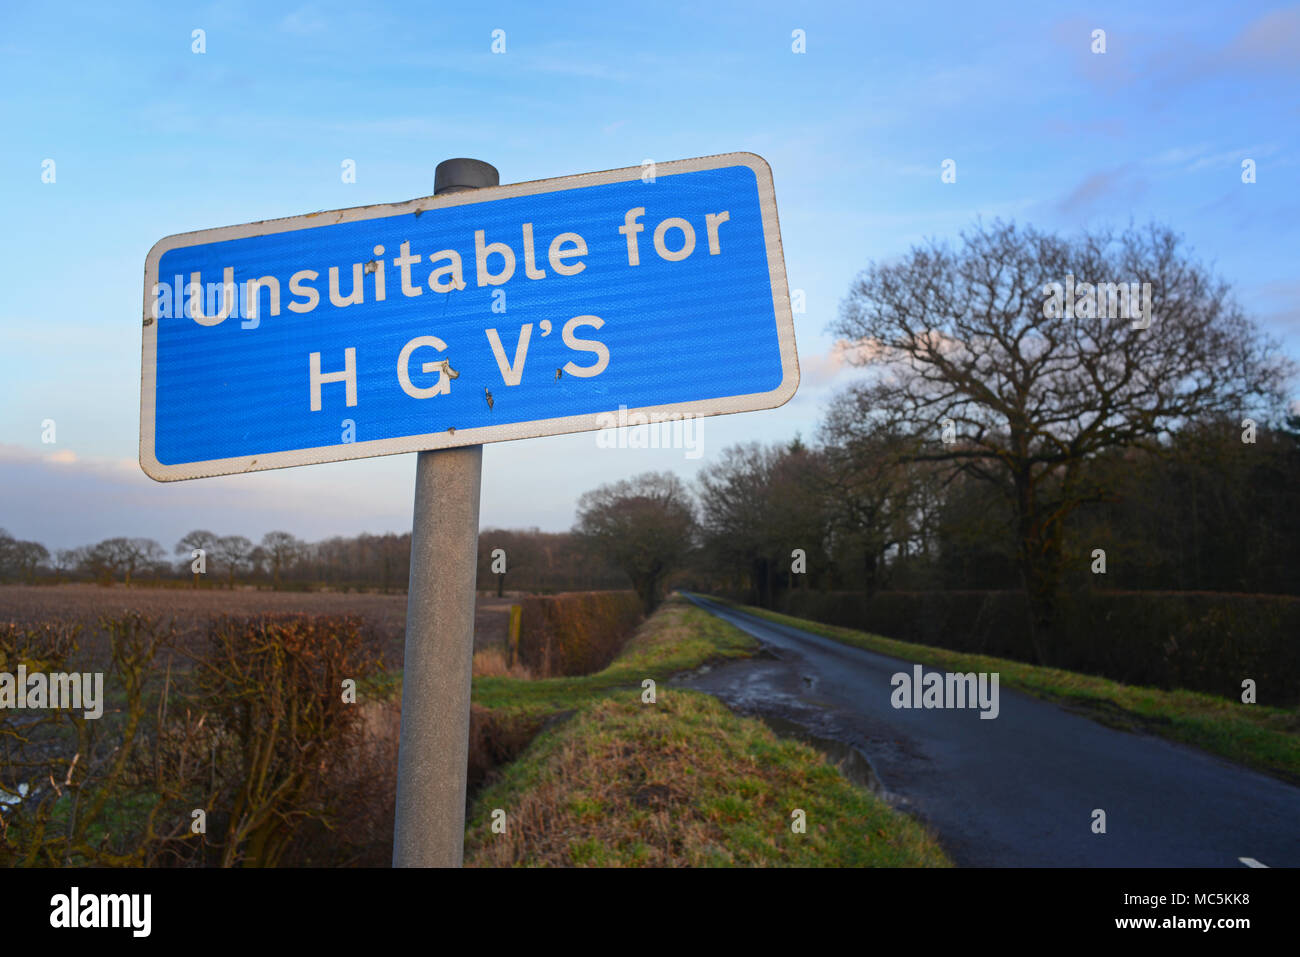 unsuitable for hgvs warning sign on narrow country lane york yorkshire united kingdom - Stock Image